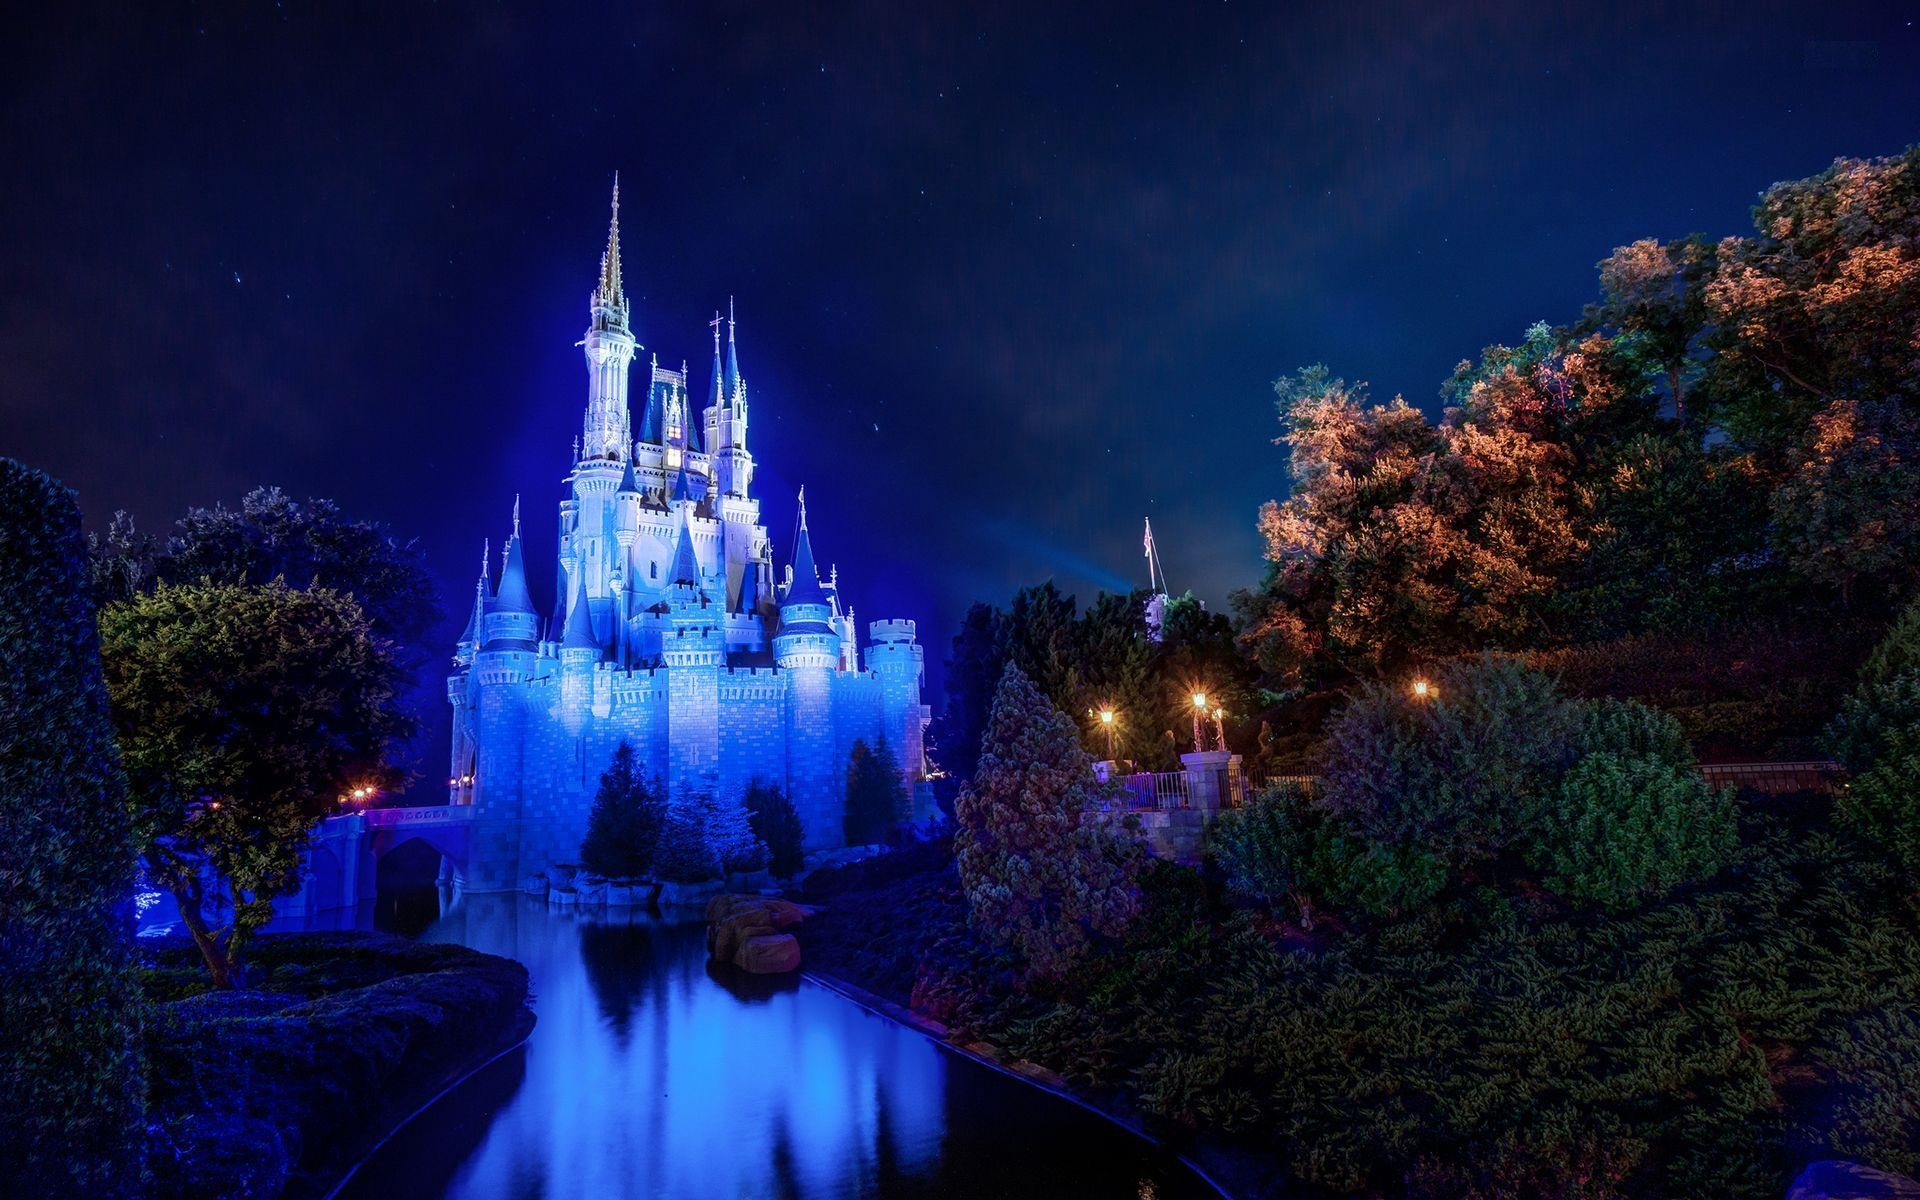 disney 3d hd wallpapers 1080p - photo #38